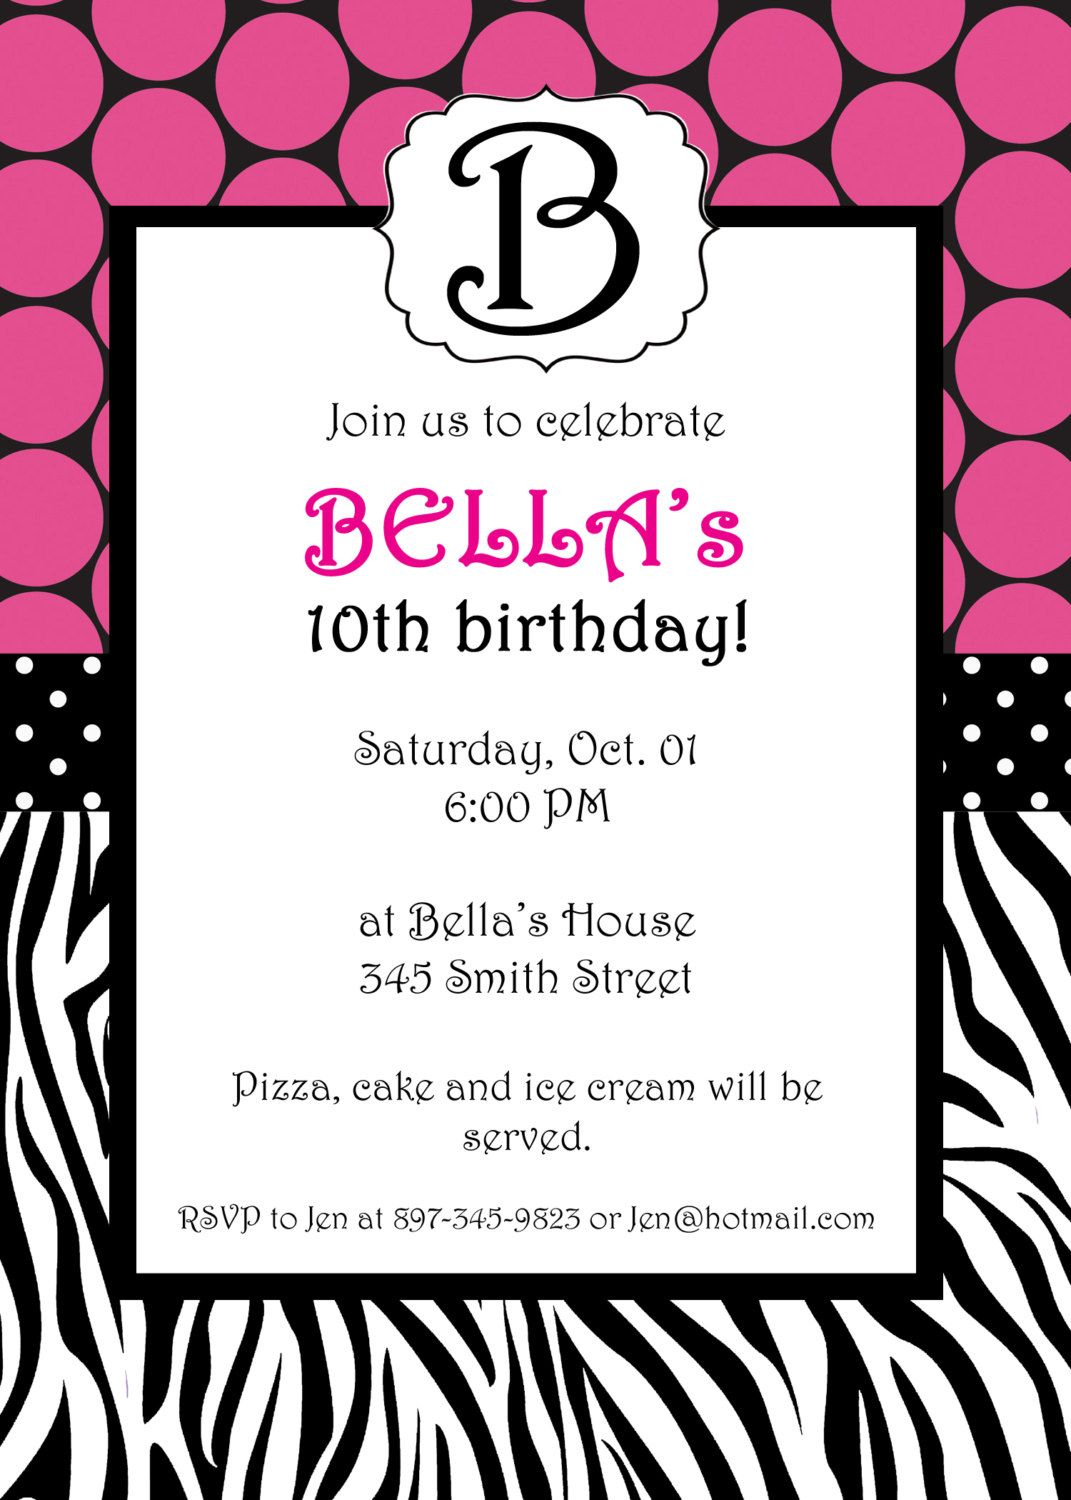 Free Printable Zebra Print Invitations Baby Shower | Emma - Free Printable Animal Print Birthday Invitations